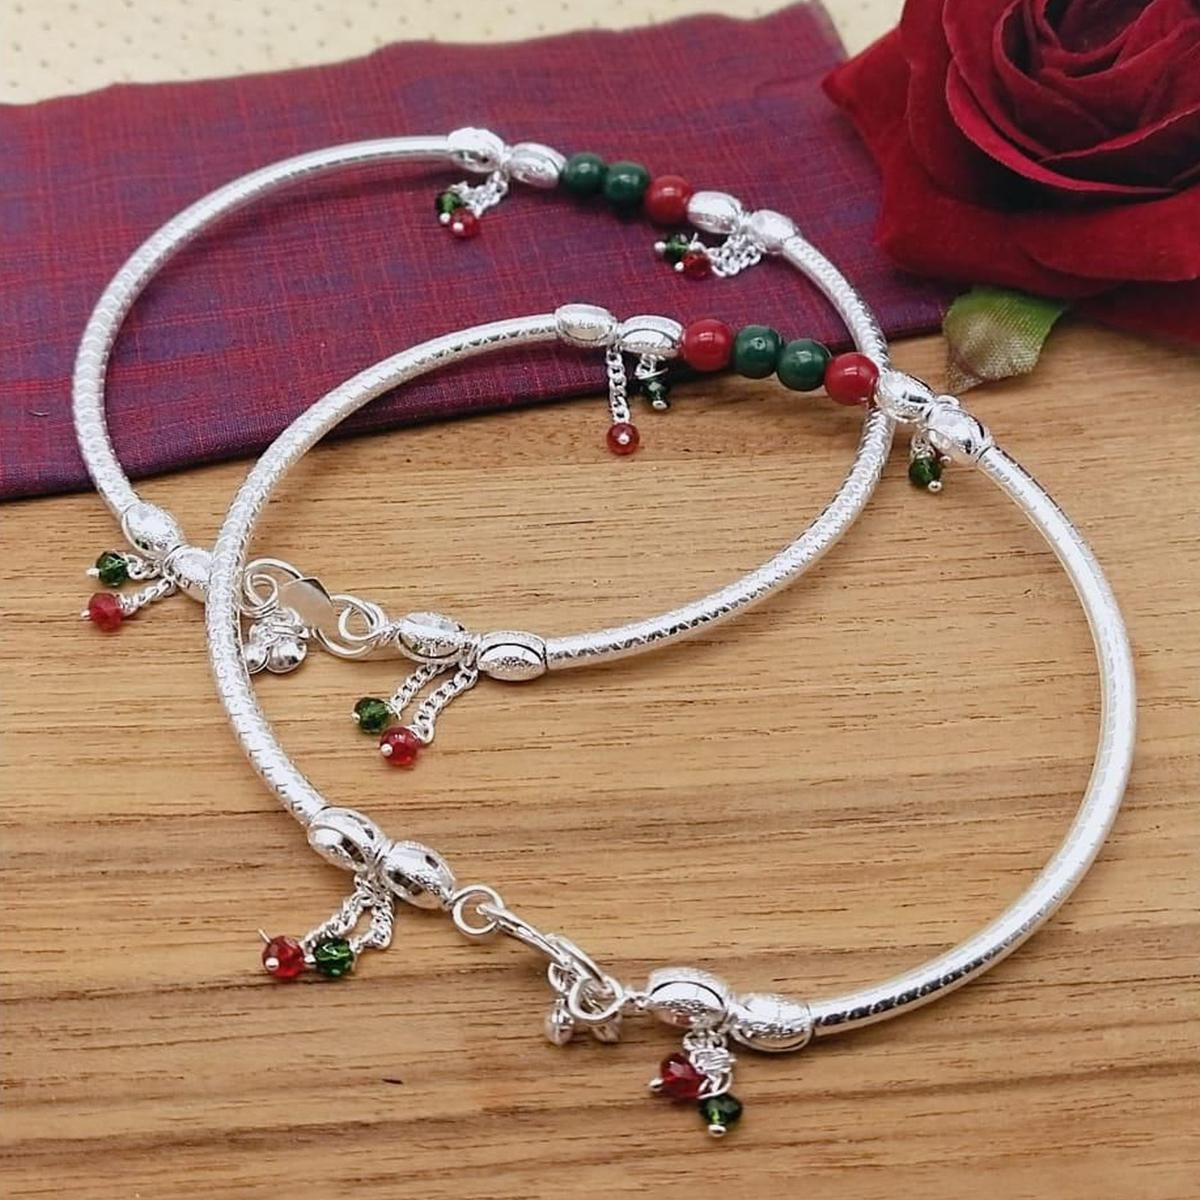 CRK WORLD - Beautiful Anklets For Women